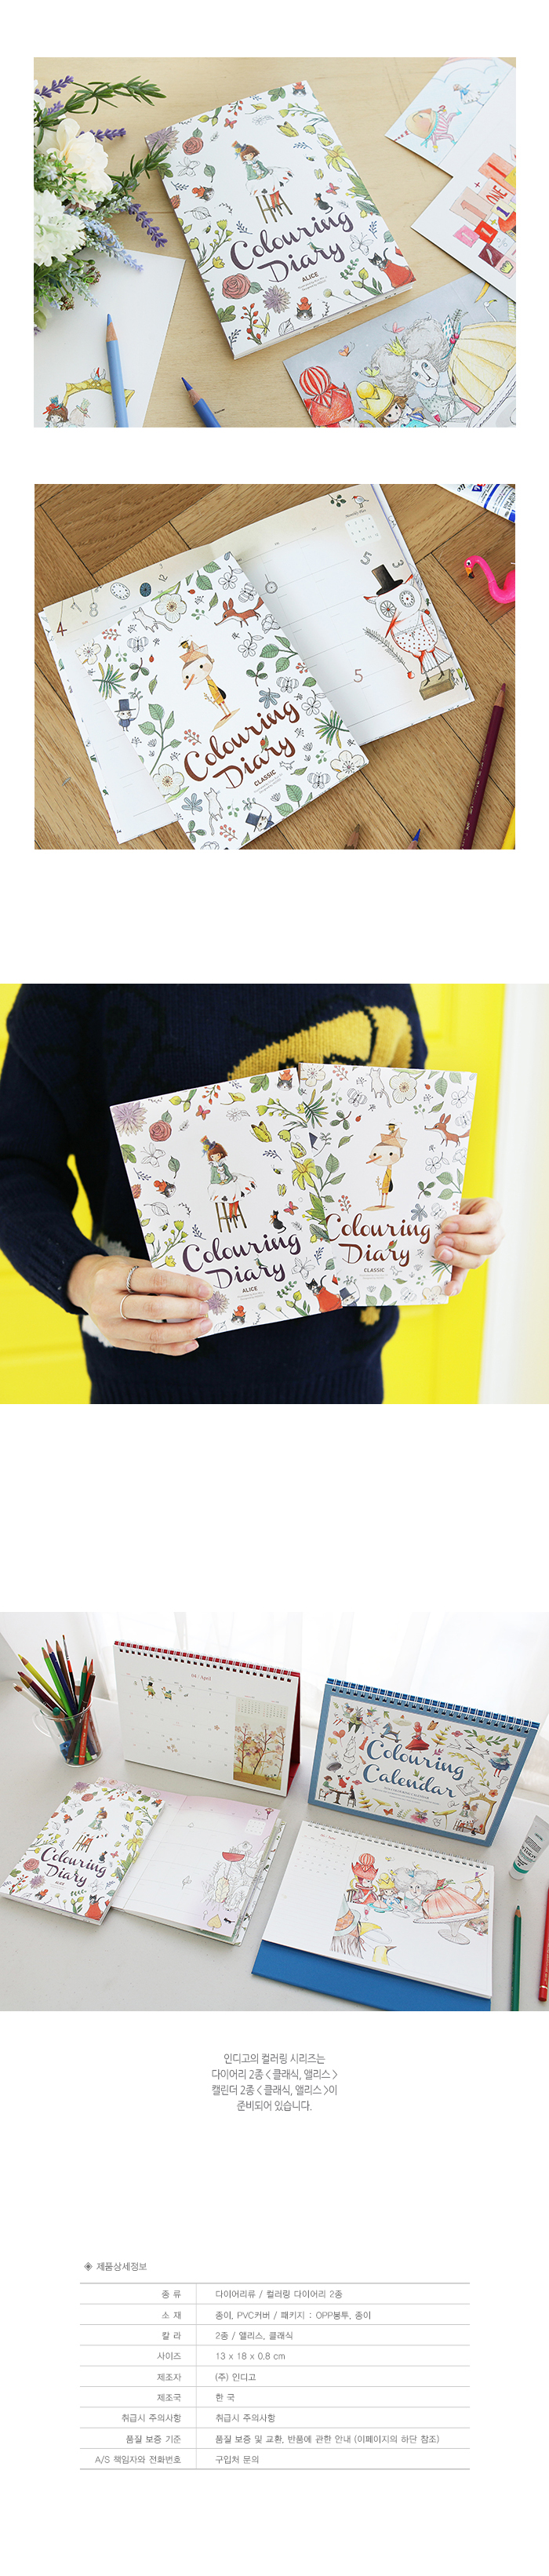 colouring in diary [colouring in diary, decorate diary, colour in diary]